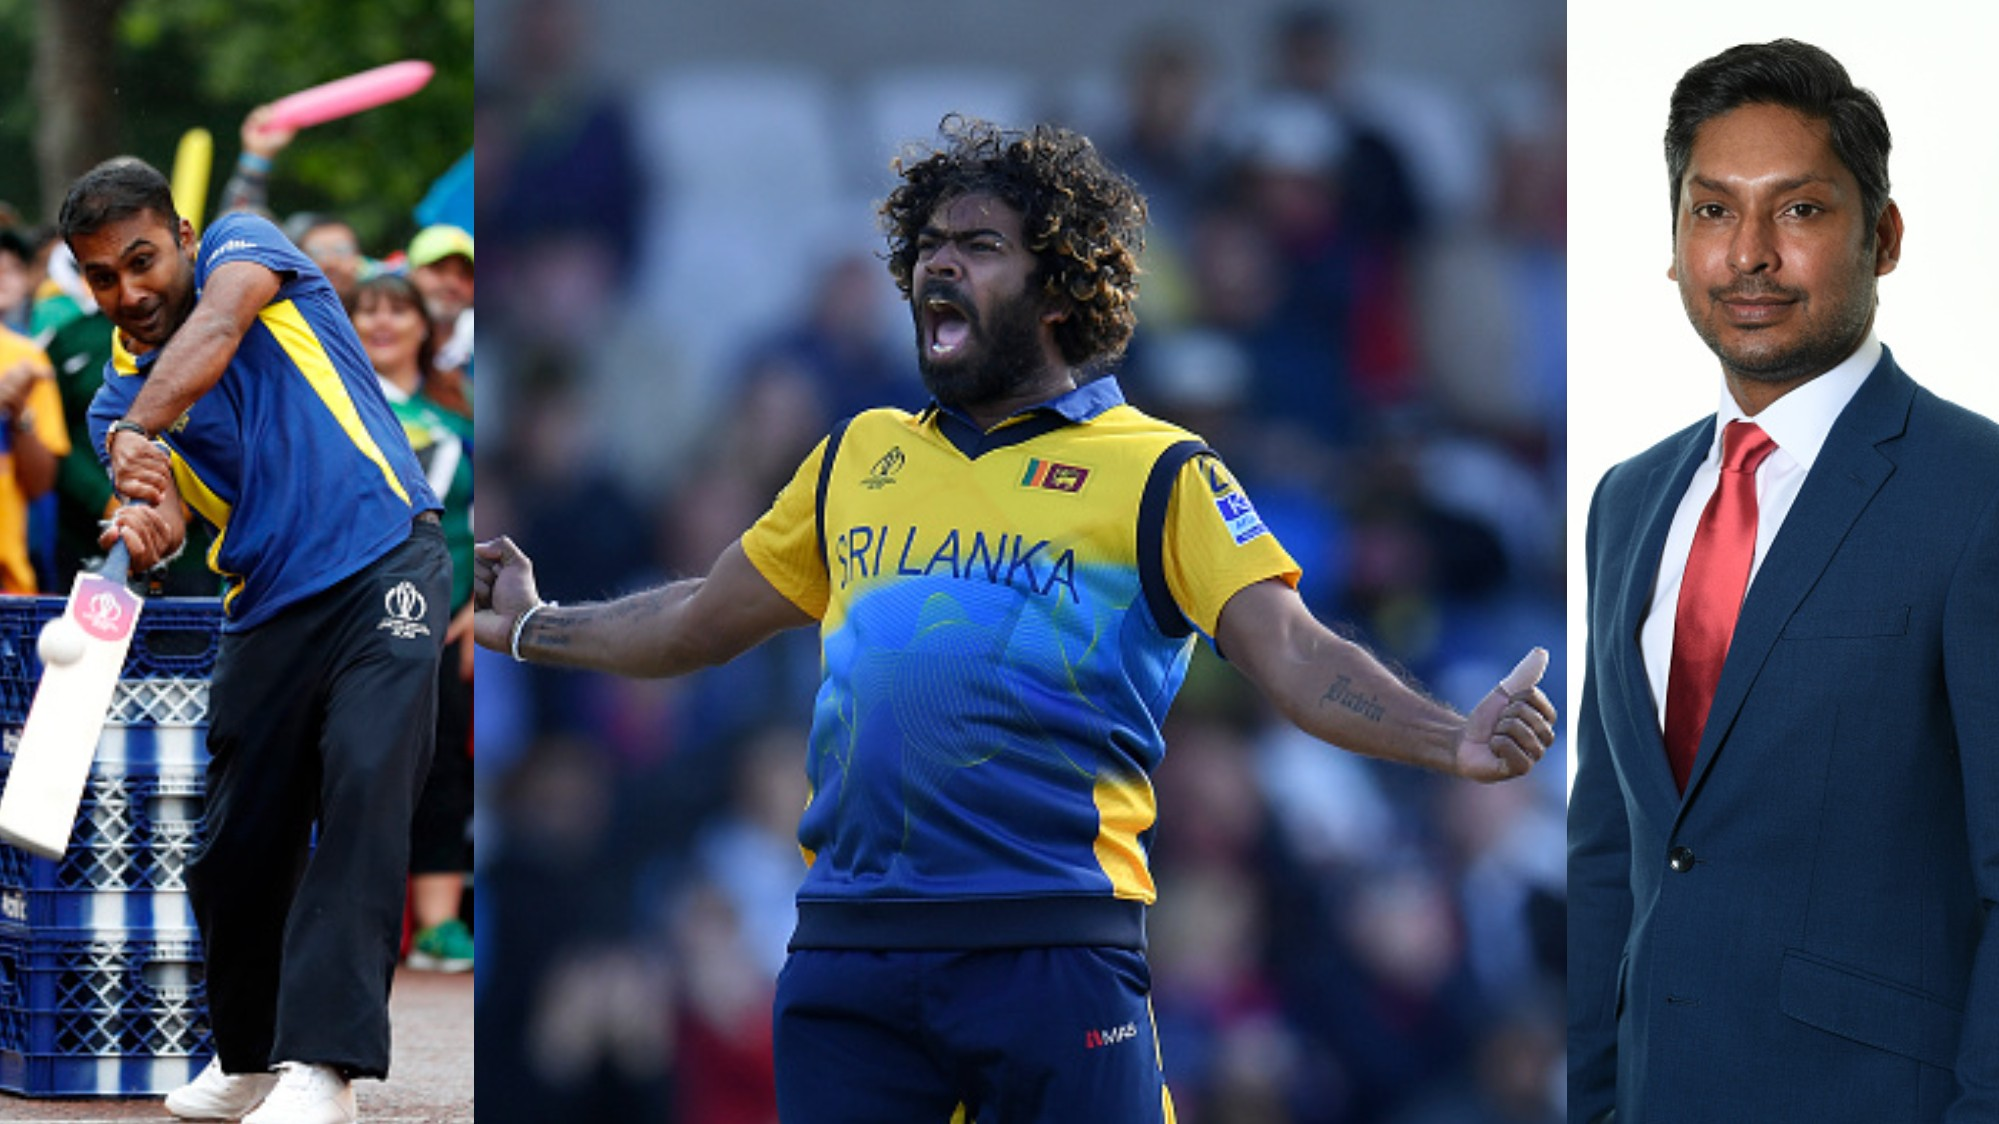 CWC 2019: Cricket fraternity rejoices as Malinga's 4-fer and Mathews' 85* helps Sri Lanka upset England by 20 runs